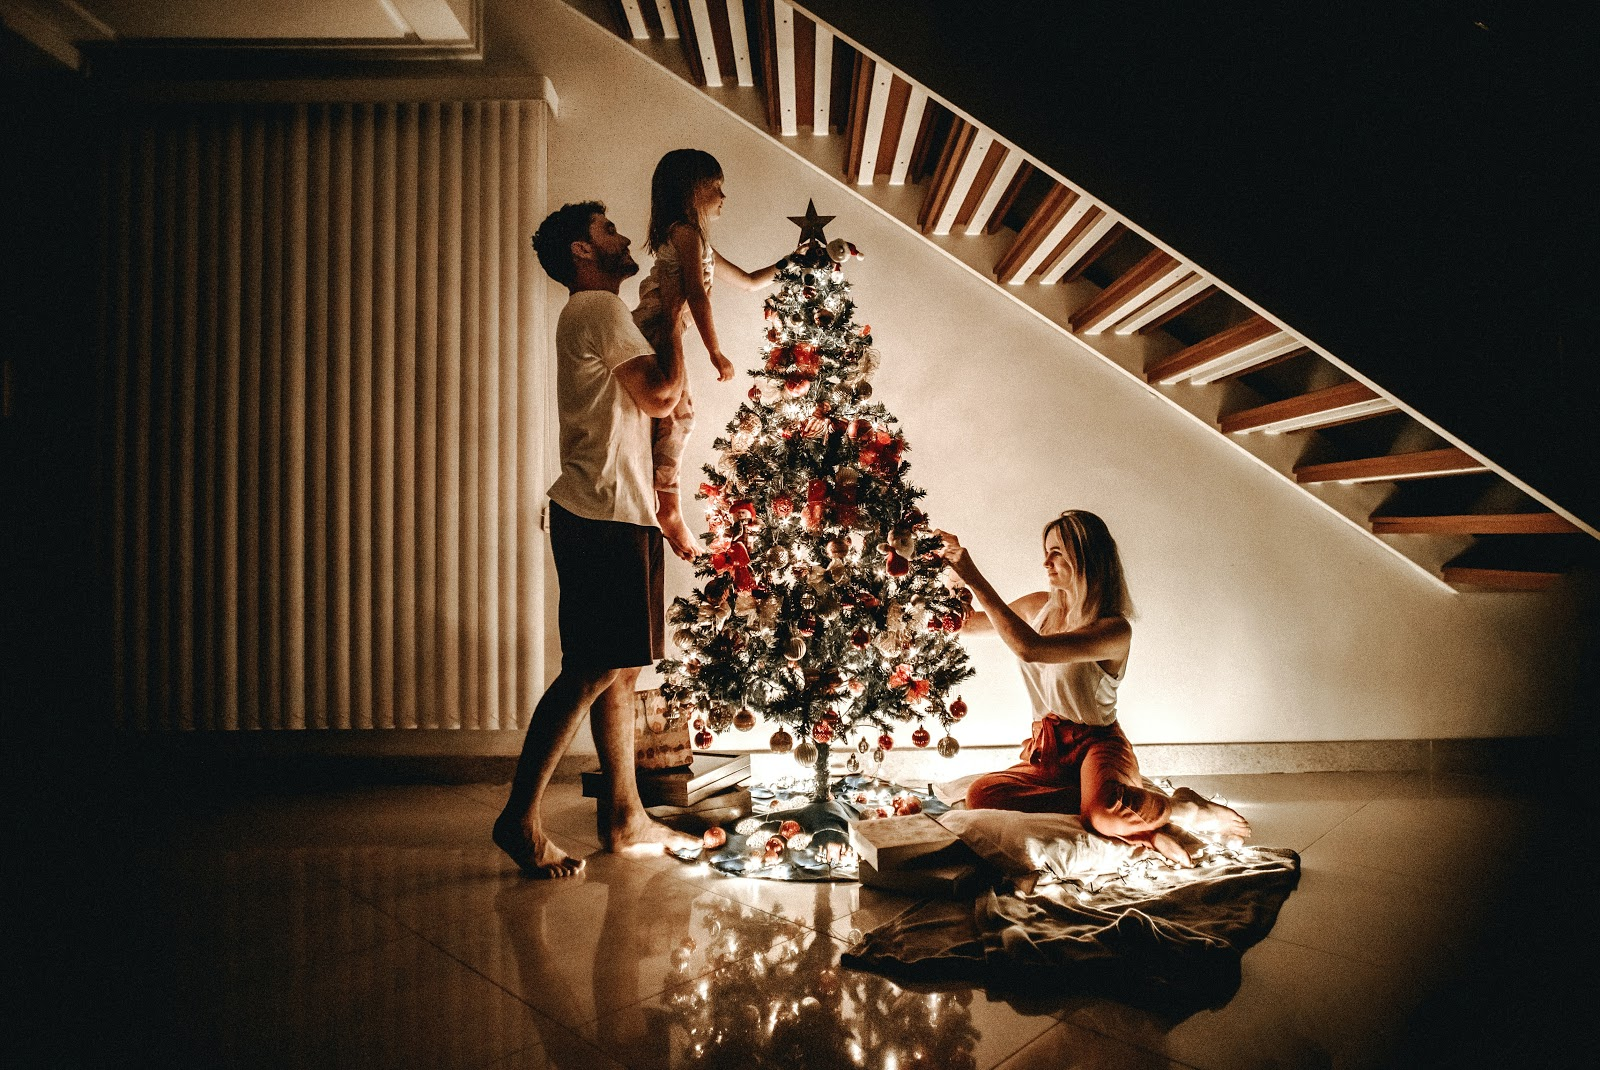 Family setting up Christmas Tree at night